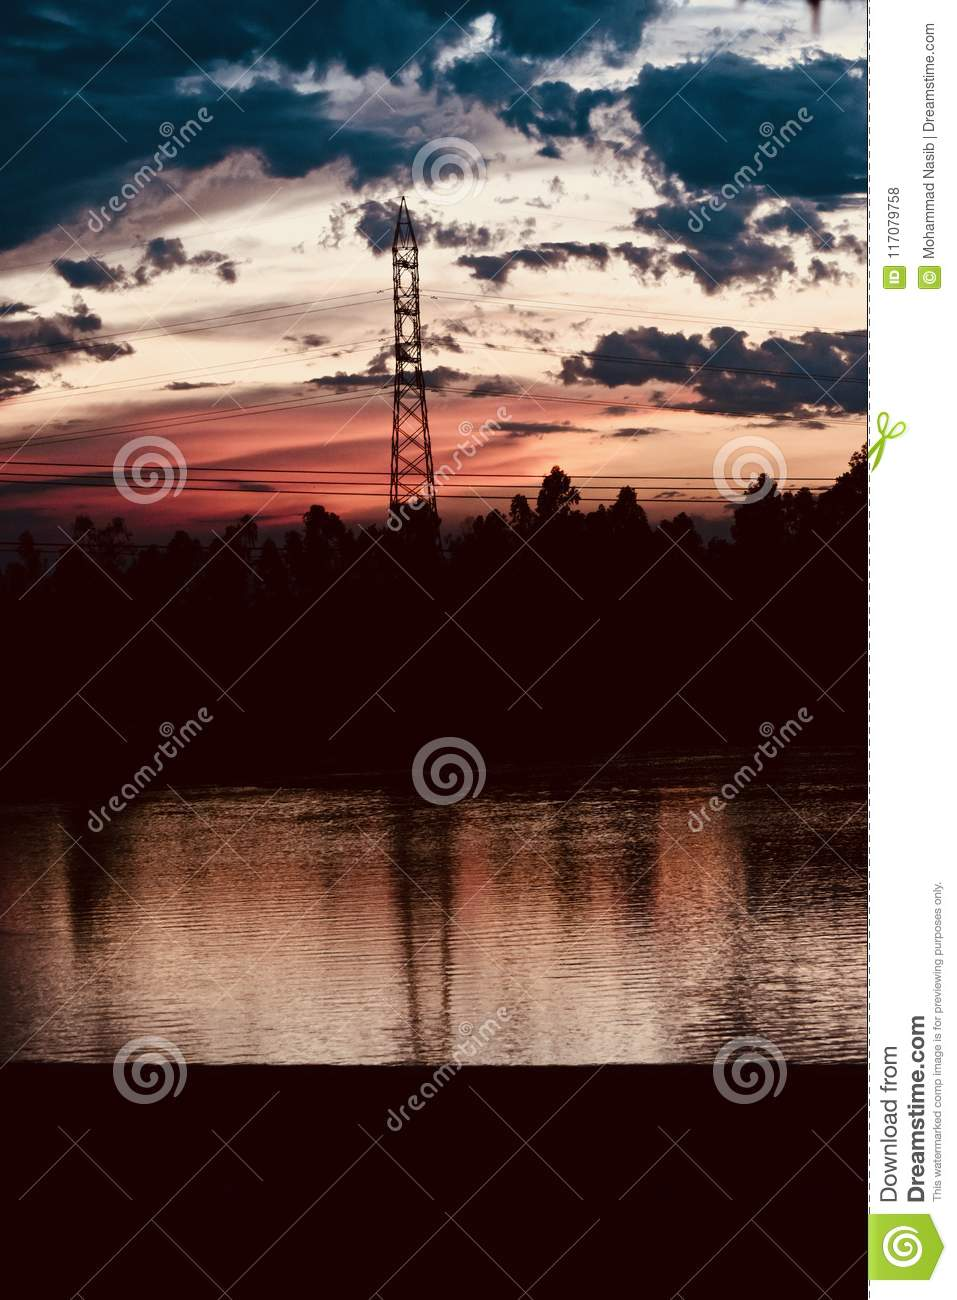 Download A Metallic Electric Tower With Cables Isolated In The Evening Unique Photograph Stock Photo - Image of area, concept: 117079758